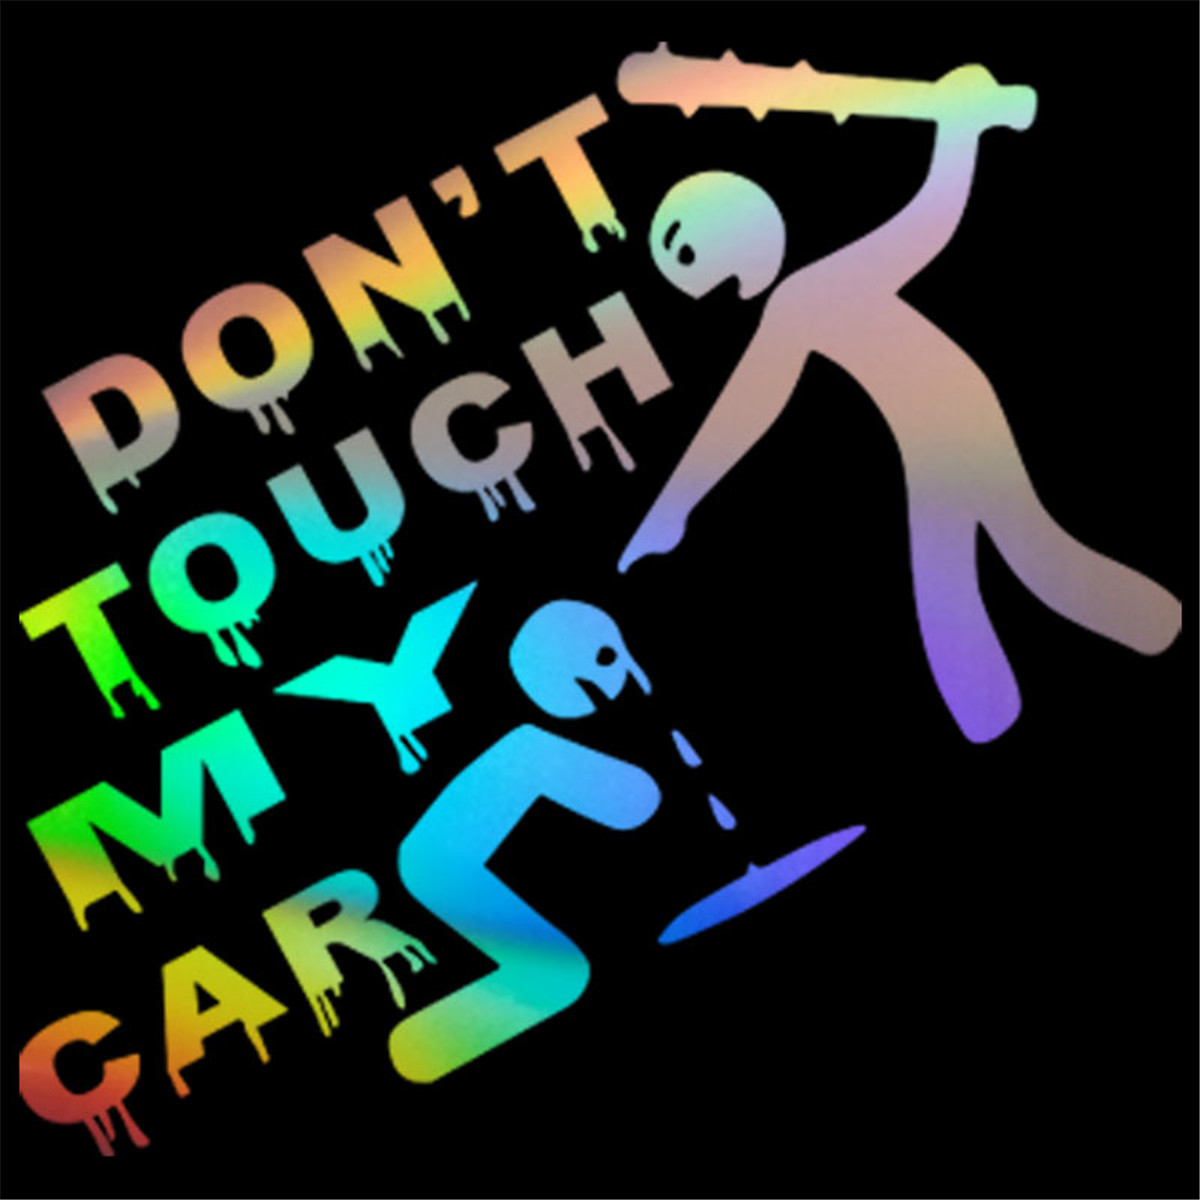 Don T Touch My Car Sticker Vinyl Decal Bumper Window Decor Removable Paster Usa Car Truck Graphics Decals Auto Parts And Vehicles Tamerindsa Com Ar